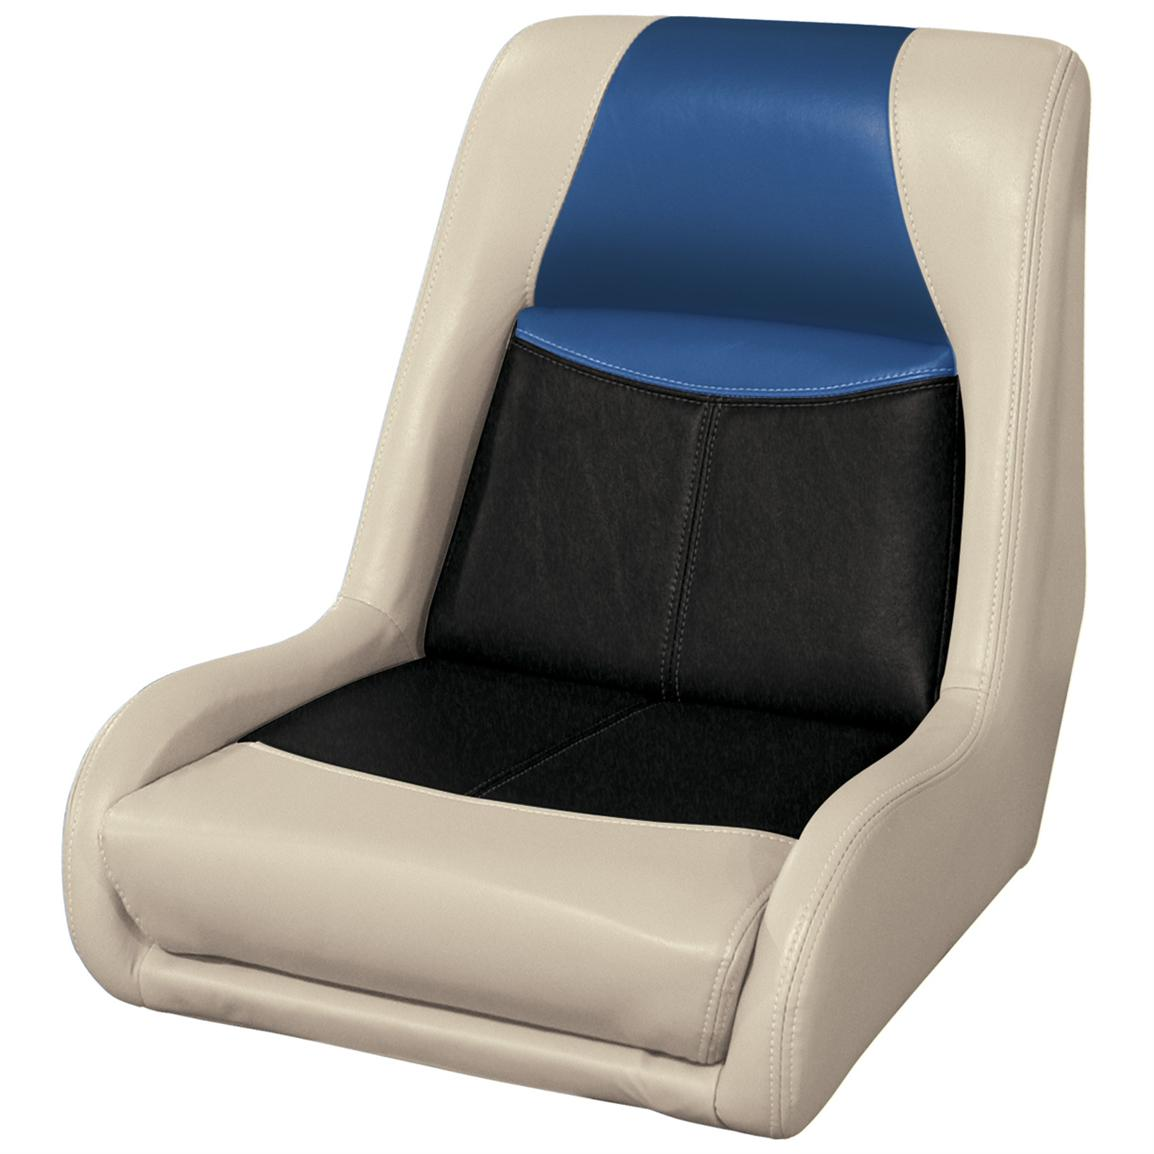 Wise® Blast-Off™ Series Swept Back Bass Bucket Seat, Mushroom / Black / Blue